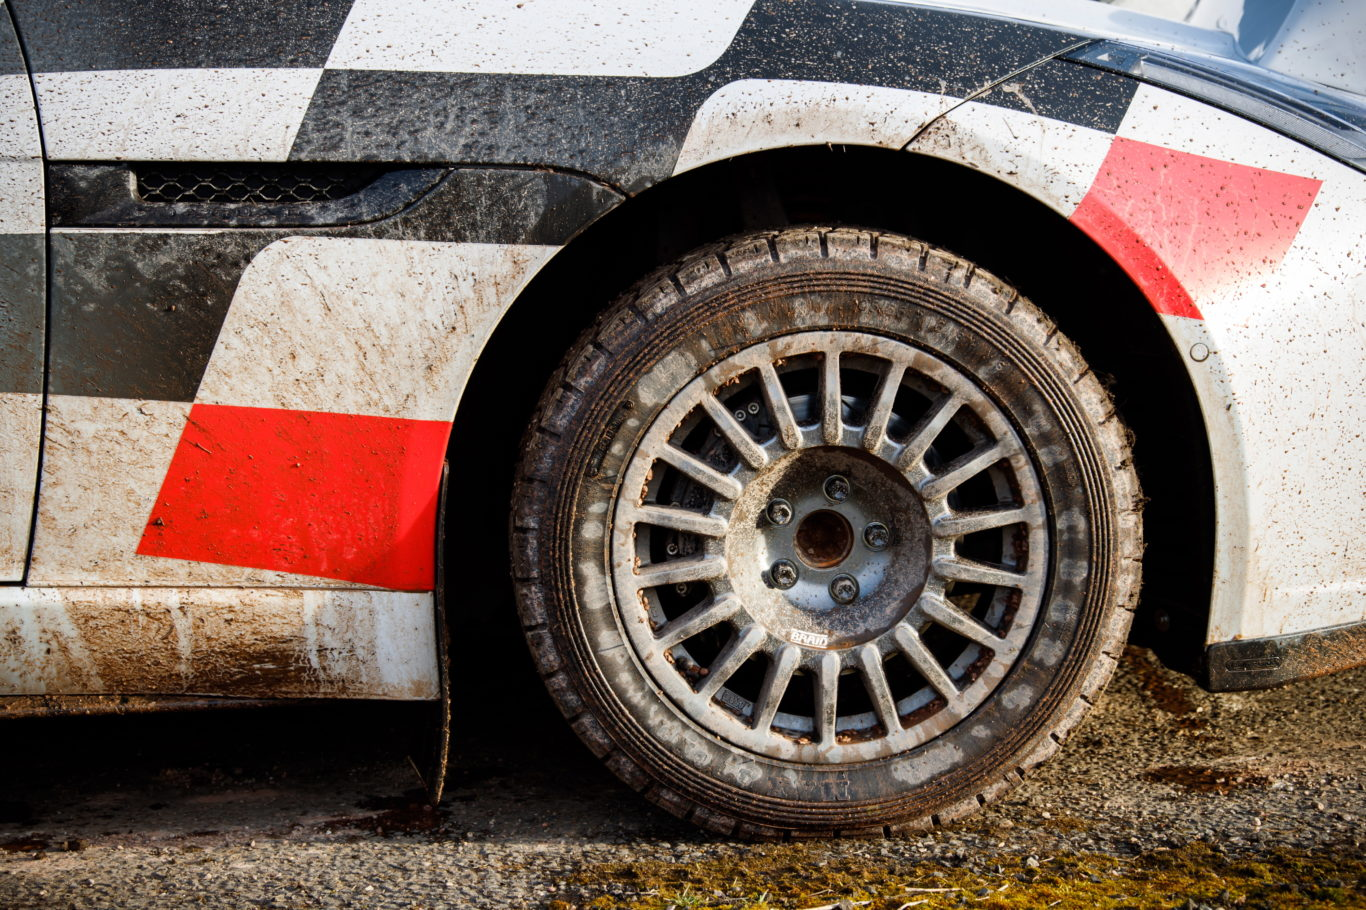 The rally car uses 16-inch wheels with knobbly tyres